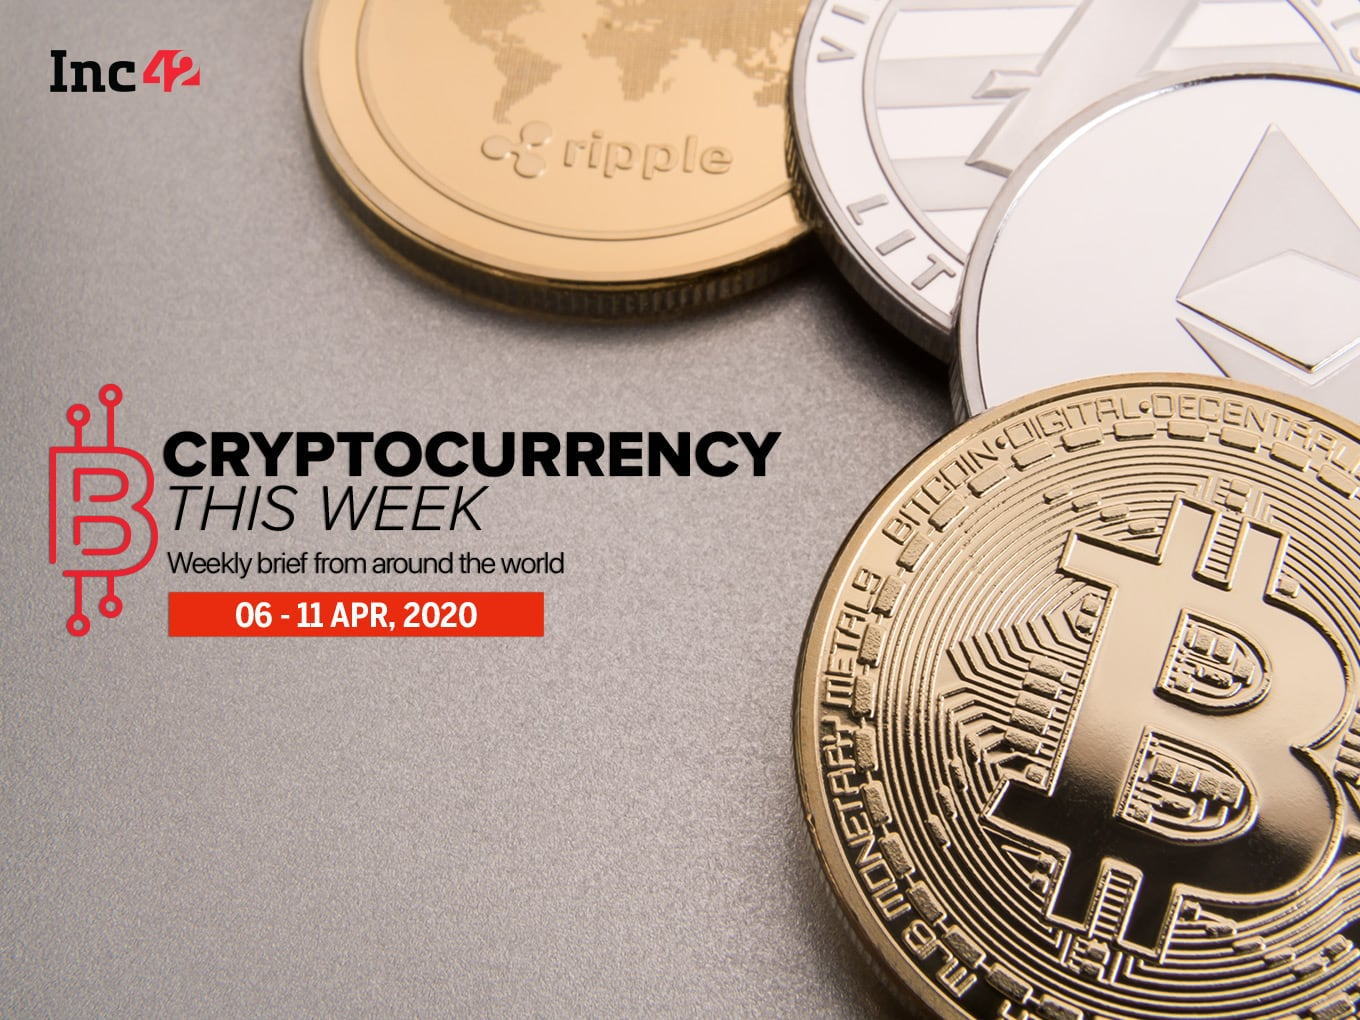 how do you get cash from cryptocurrency